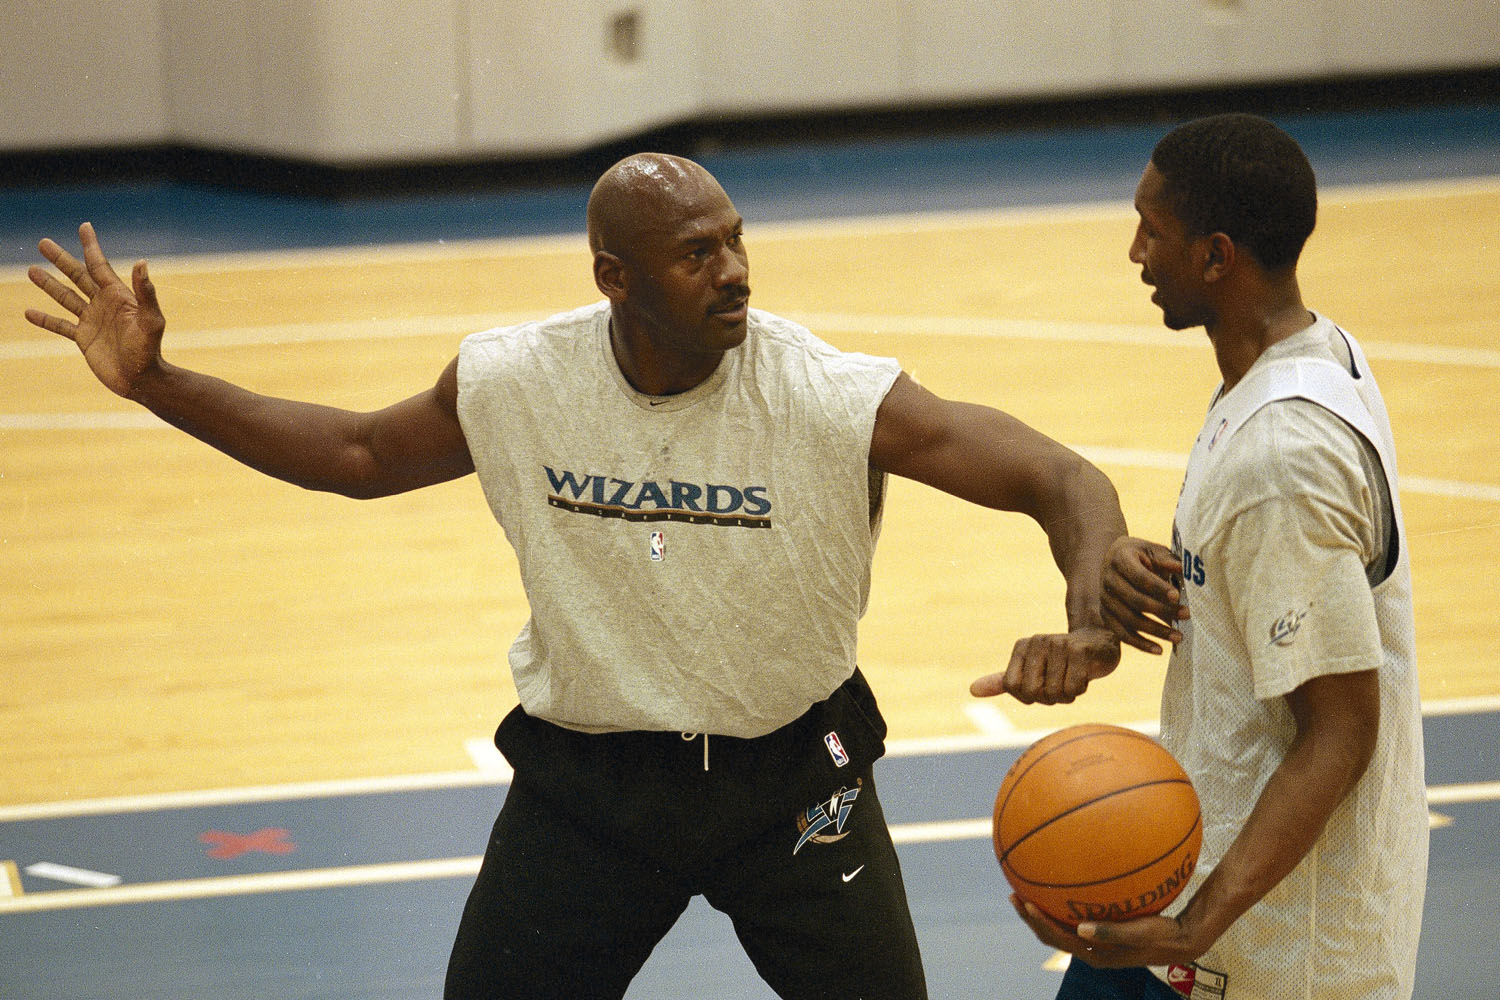 Washington Wizards executive Michael Jordan giving some advice to players during practice in 2000.